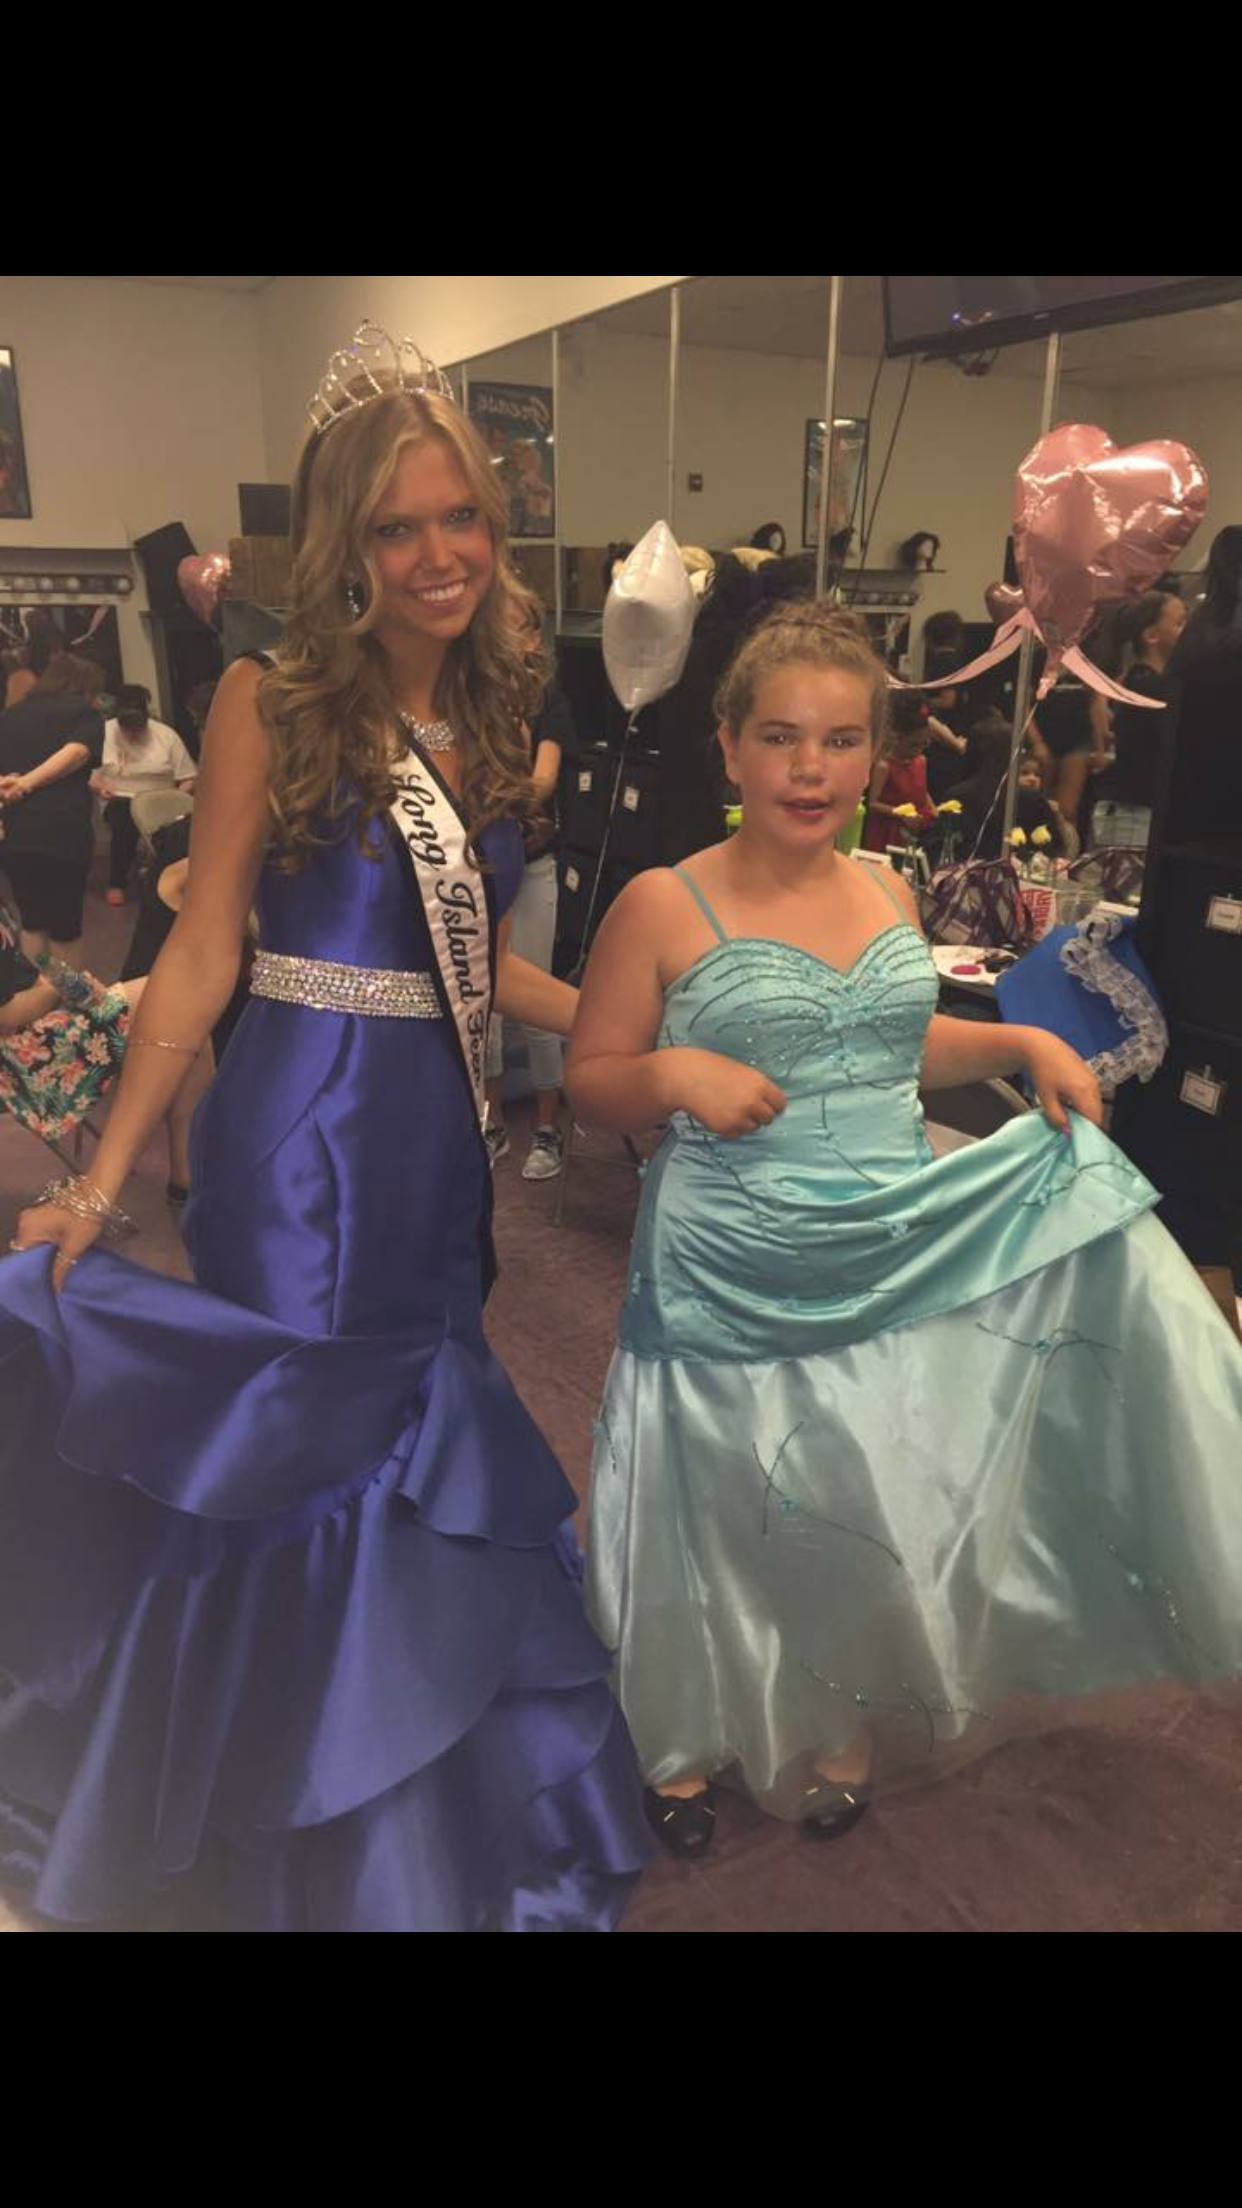 2017 Miss Long Island Teen Taylor Yaeger, 18, of Dix Hills, is pictured last week at the Miss Exceptional Long Island pageant, during which she crowned participants.